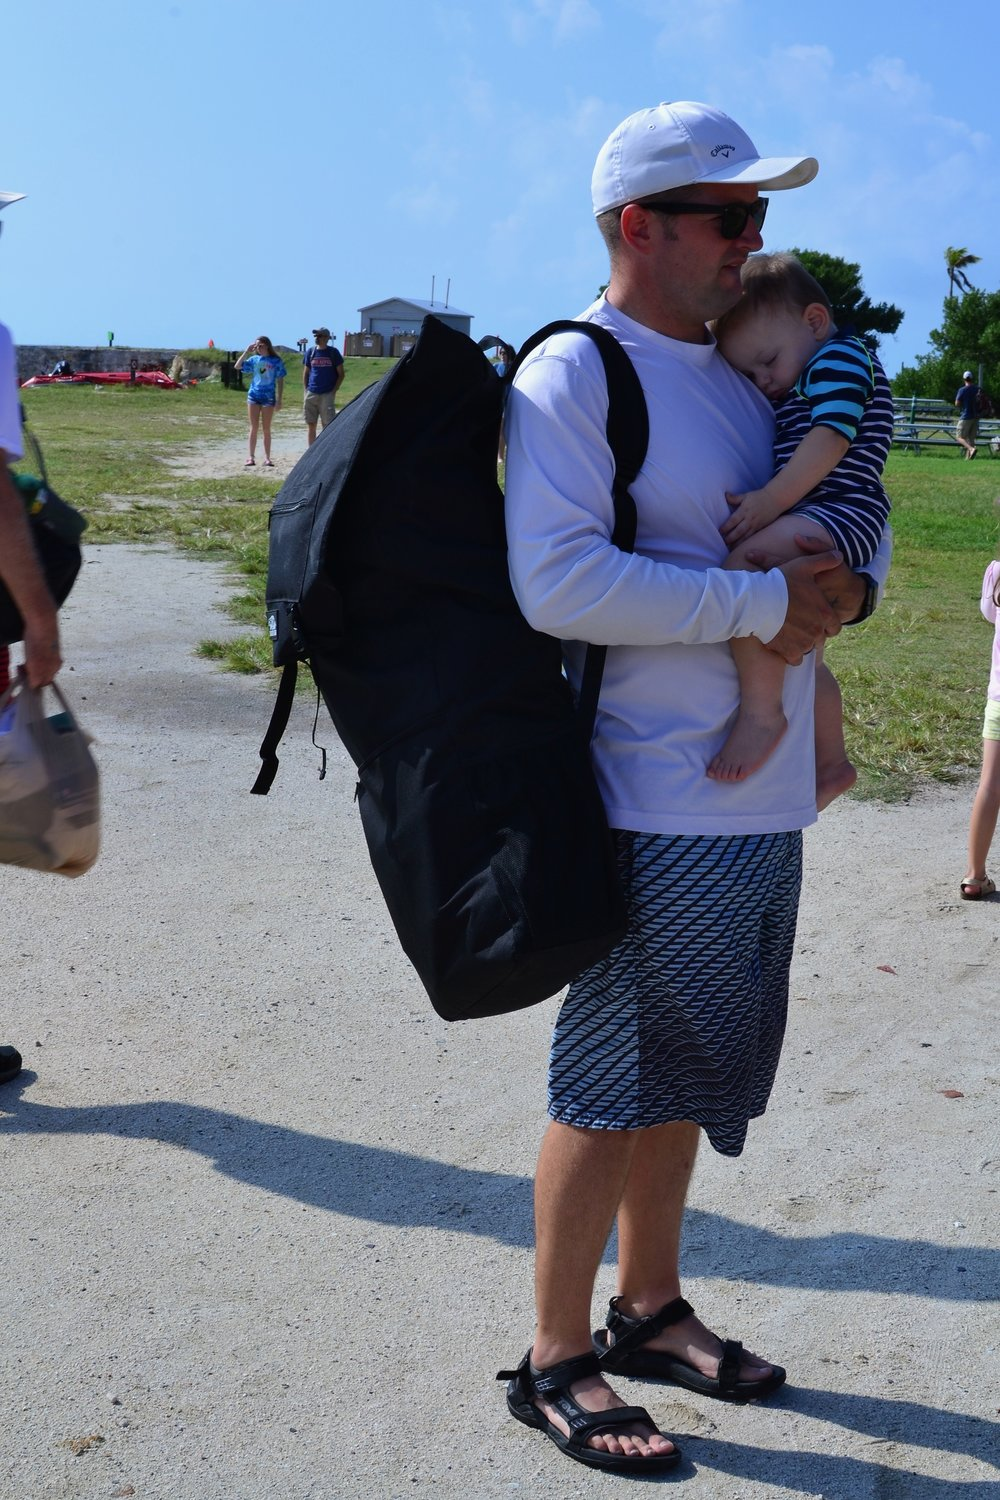 My husband, the hero, holding all of our gear for the Dry Tortugas and holding a sleeping baby.